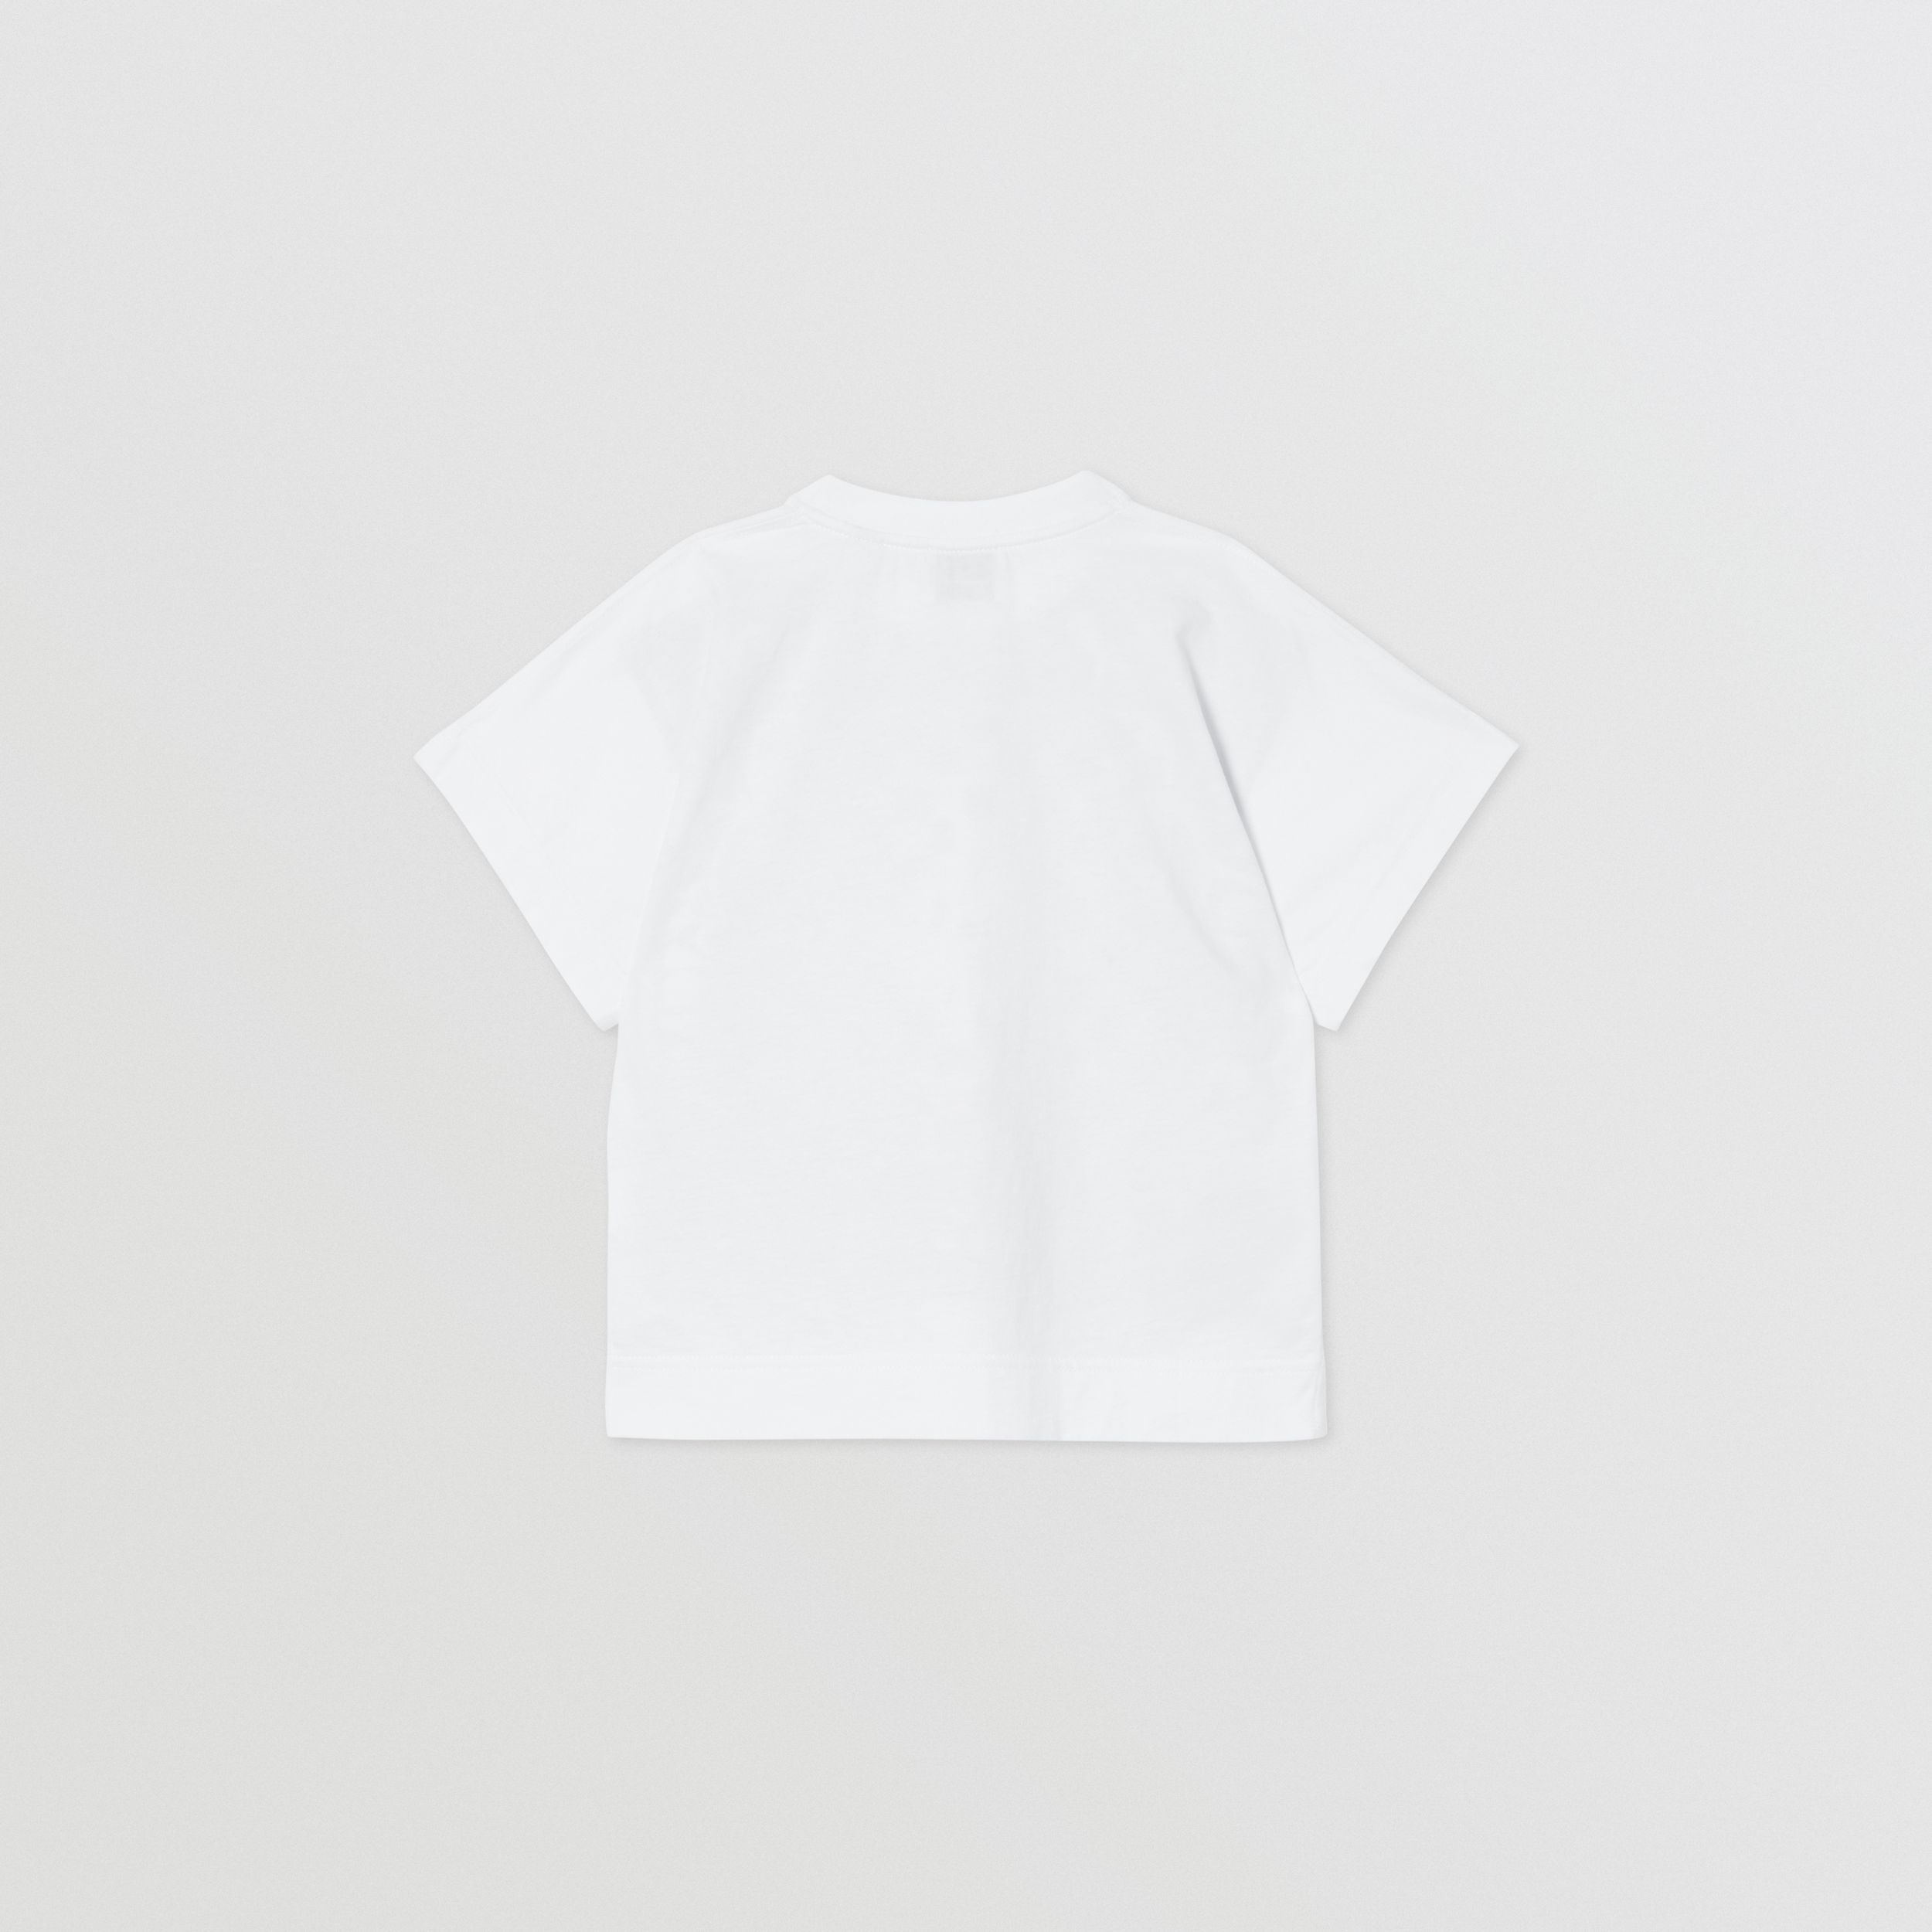 Scarf Print Cotton T-shirt in White | Burberry - 4